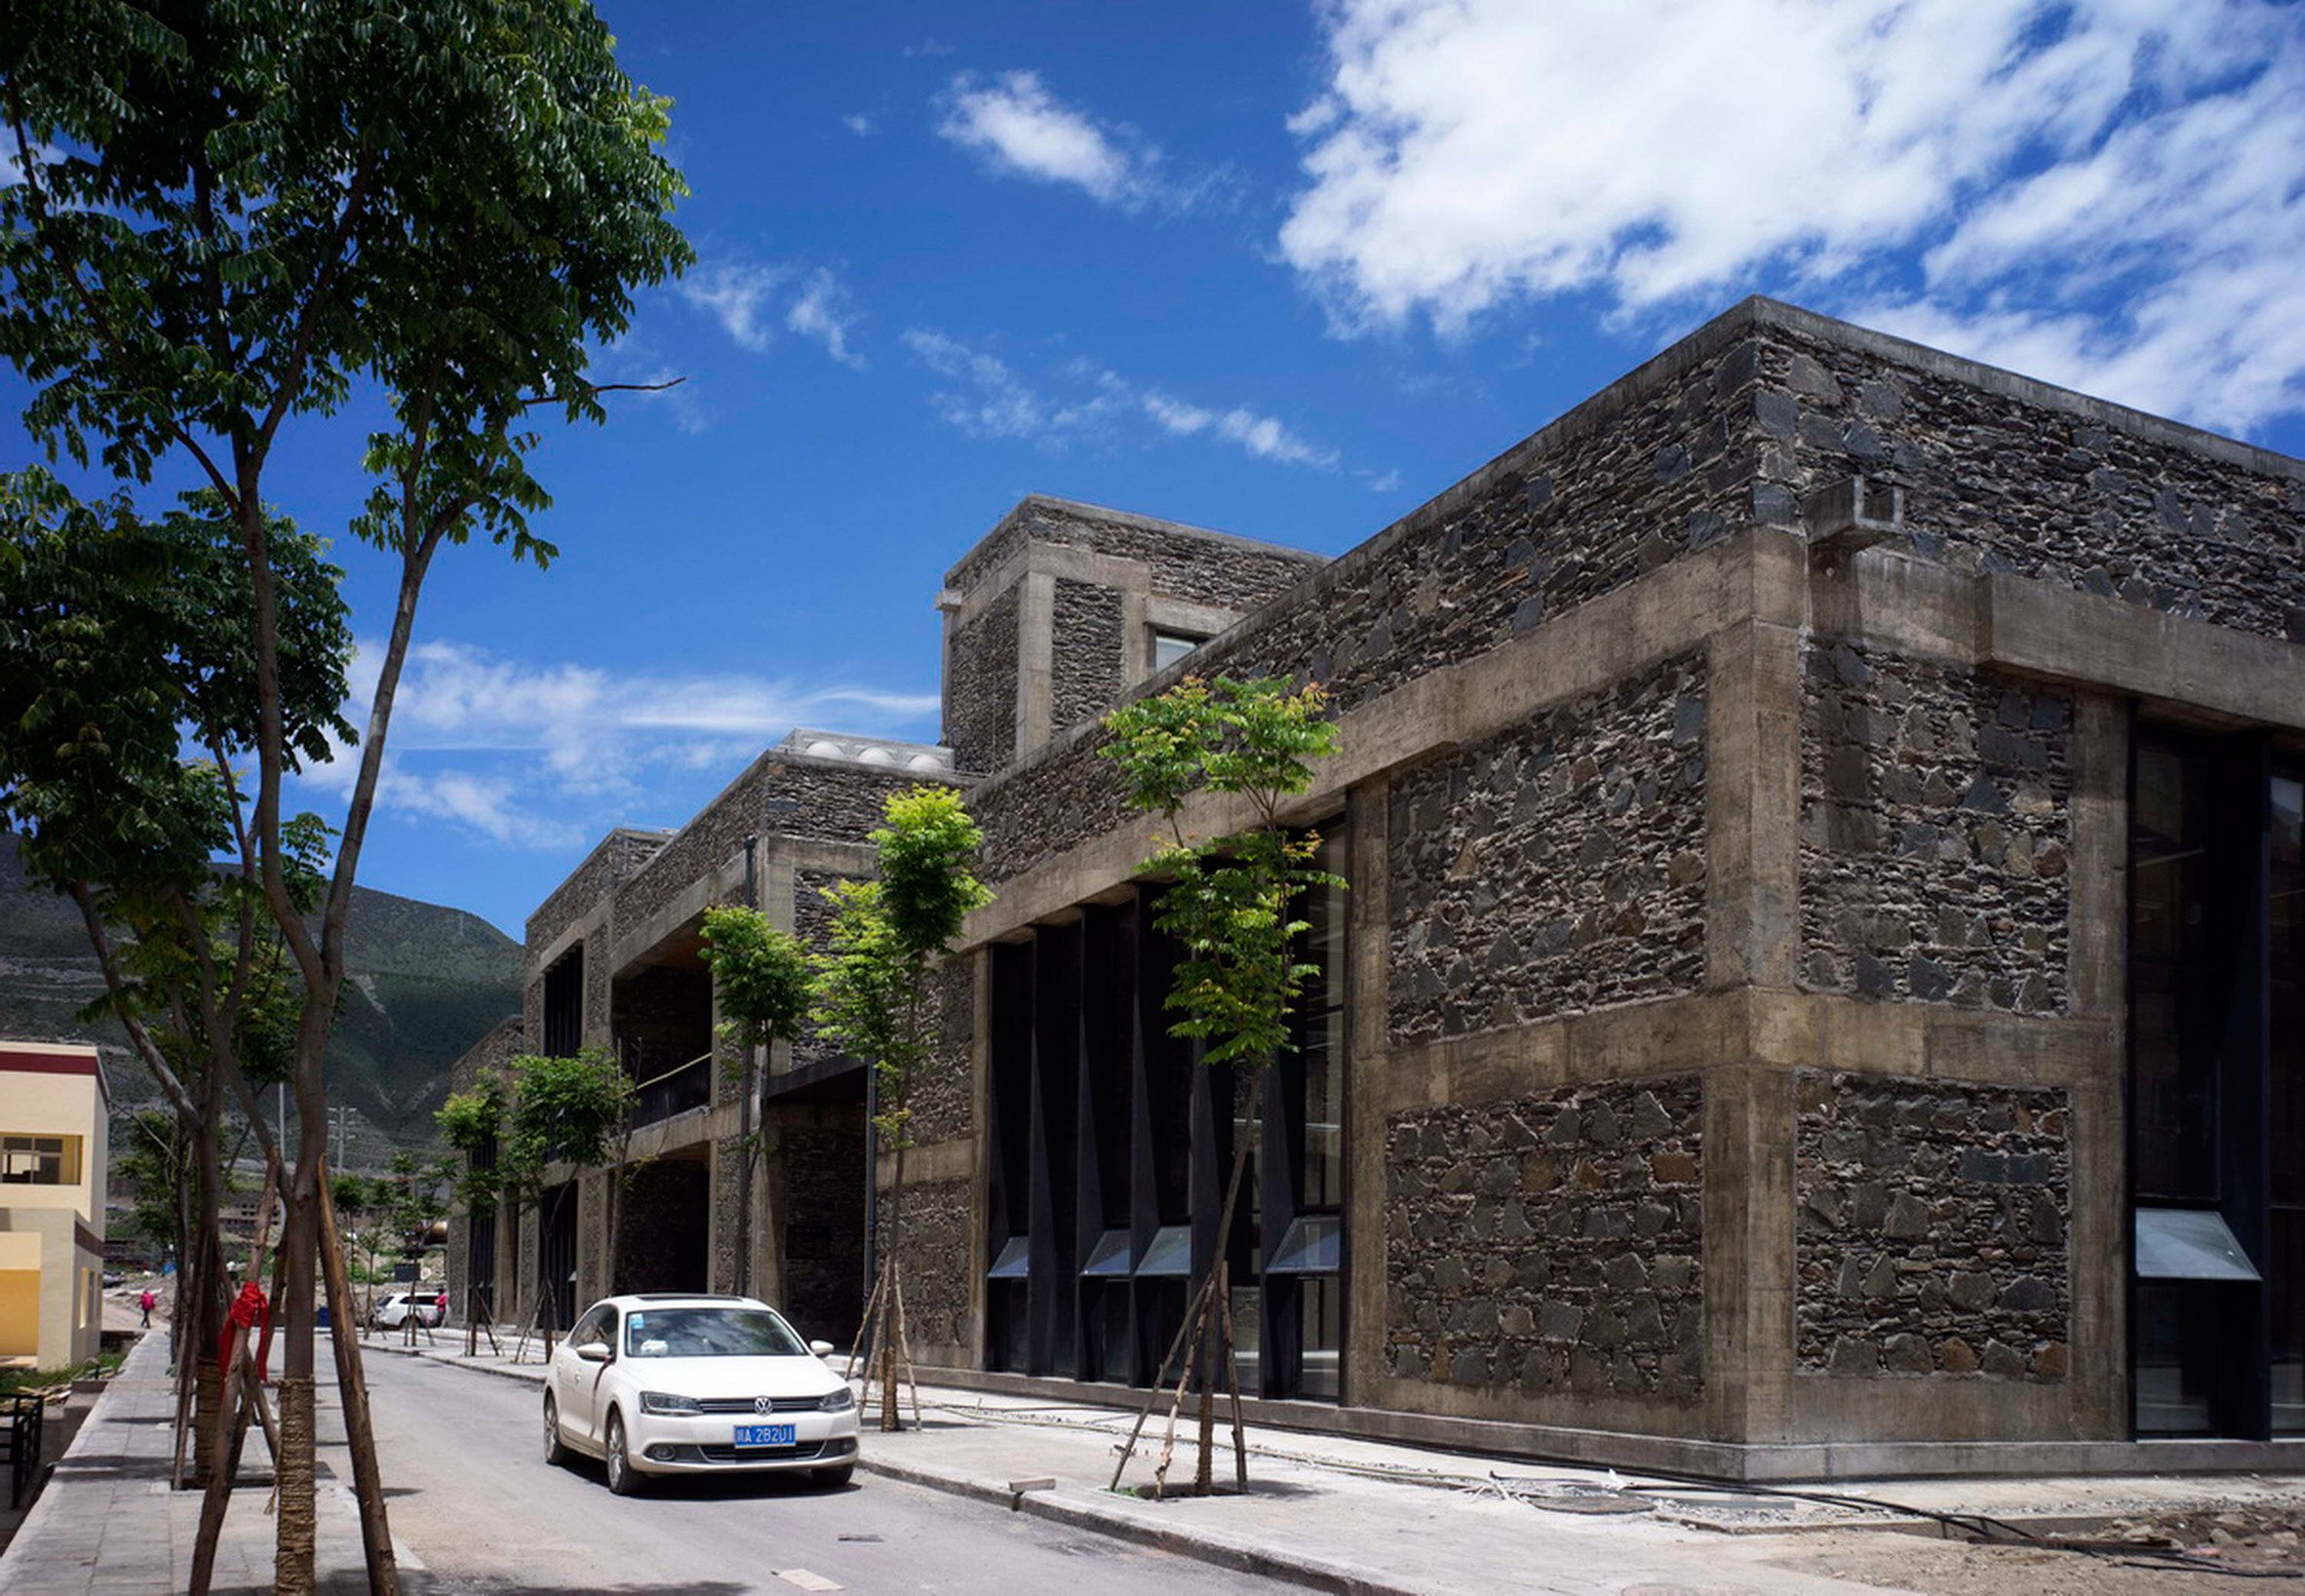 Tibetan school in China is clad is stone to match mountainous setting